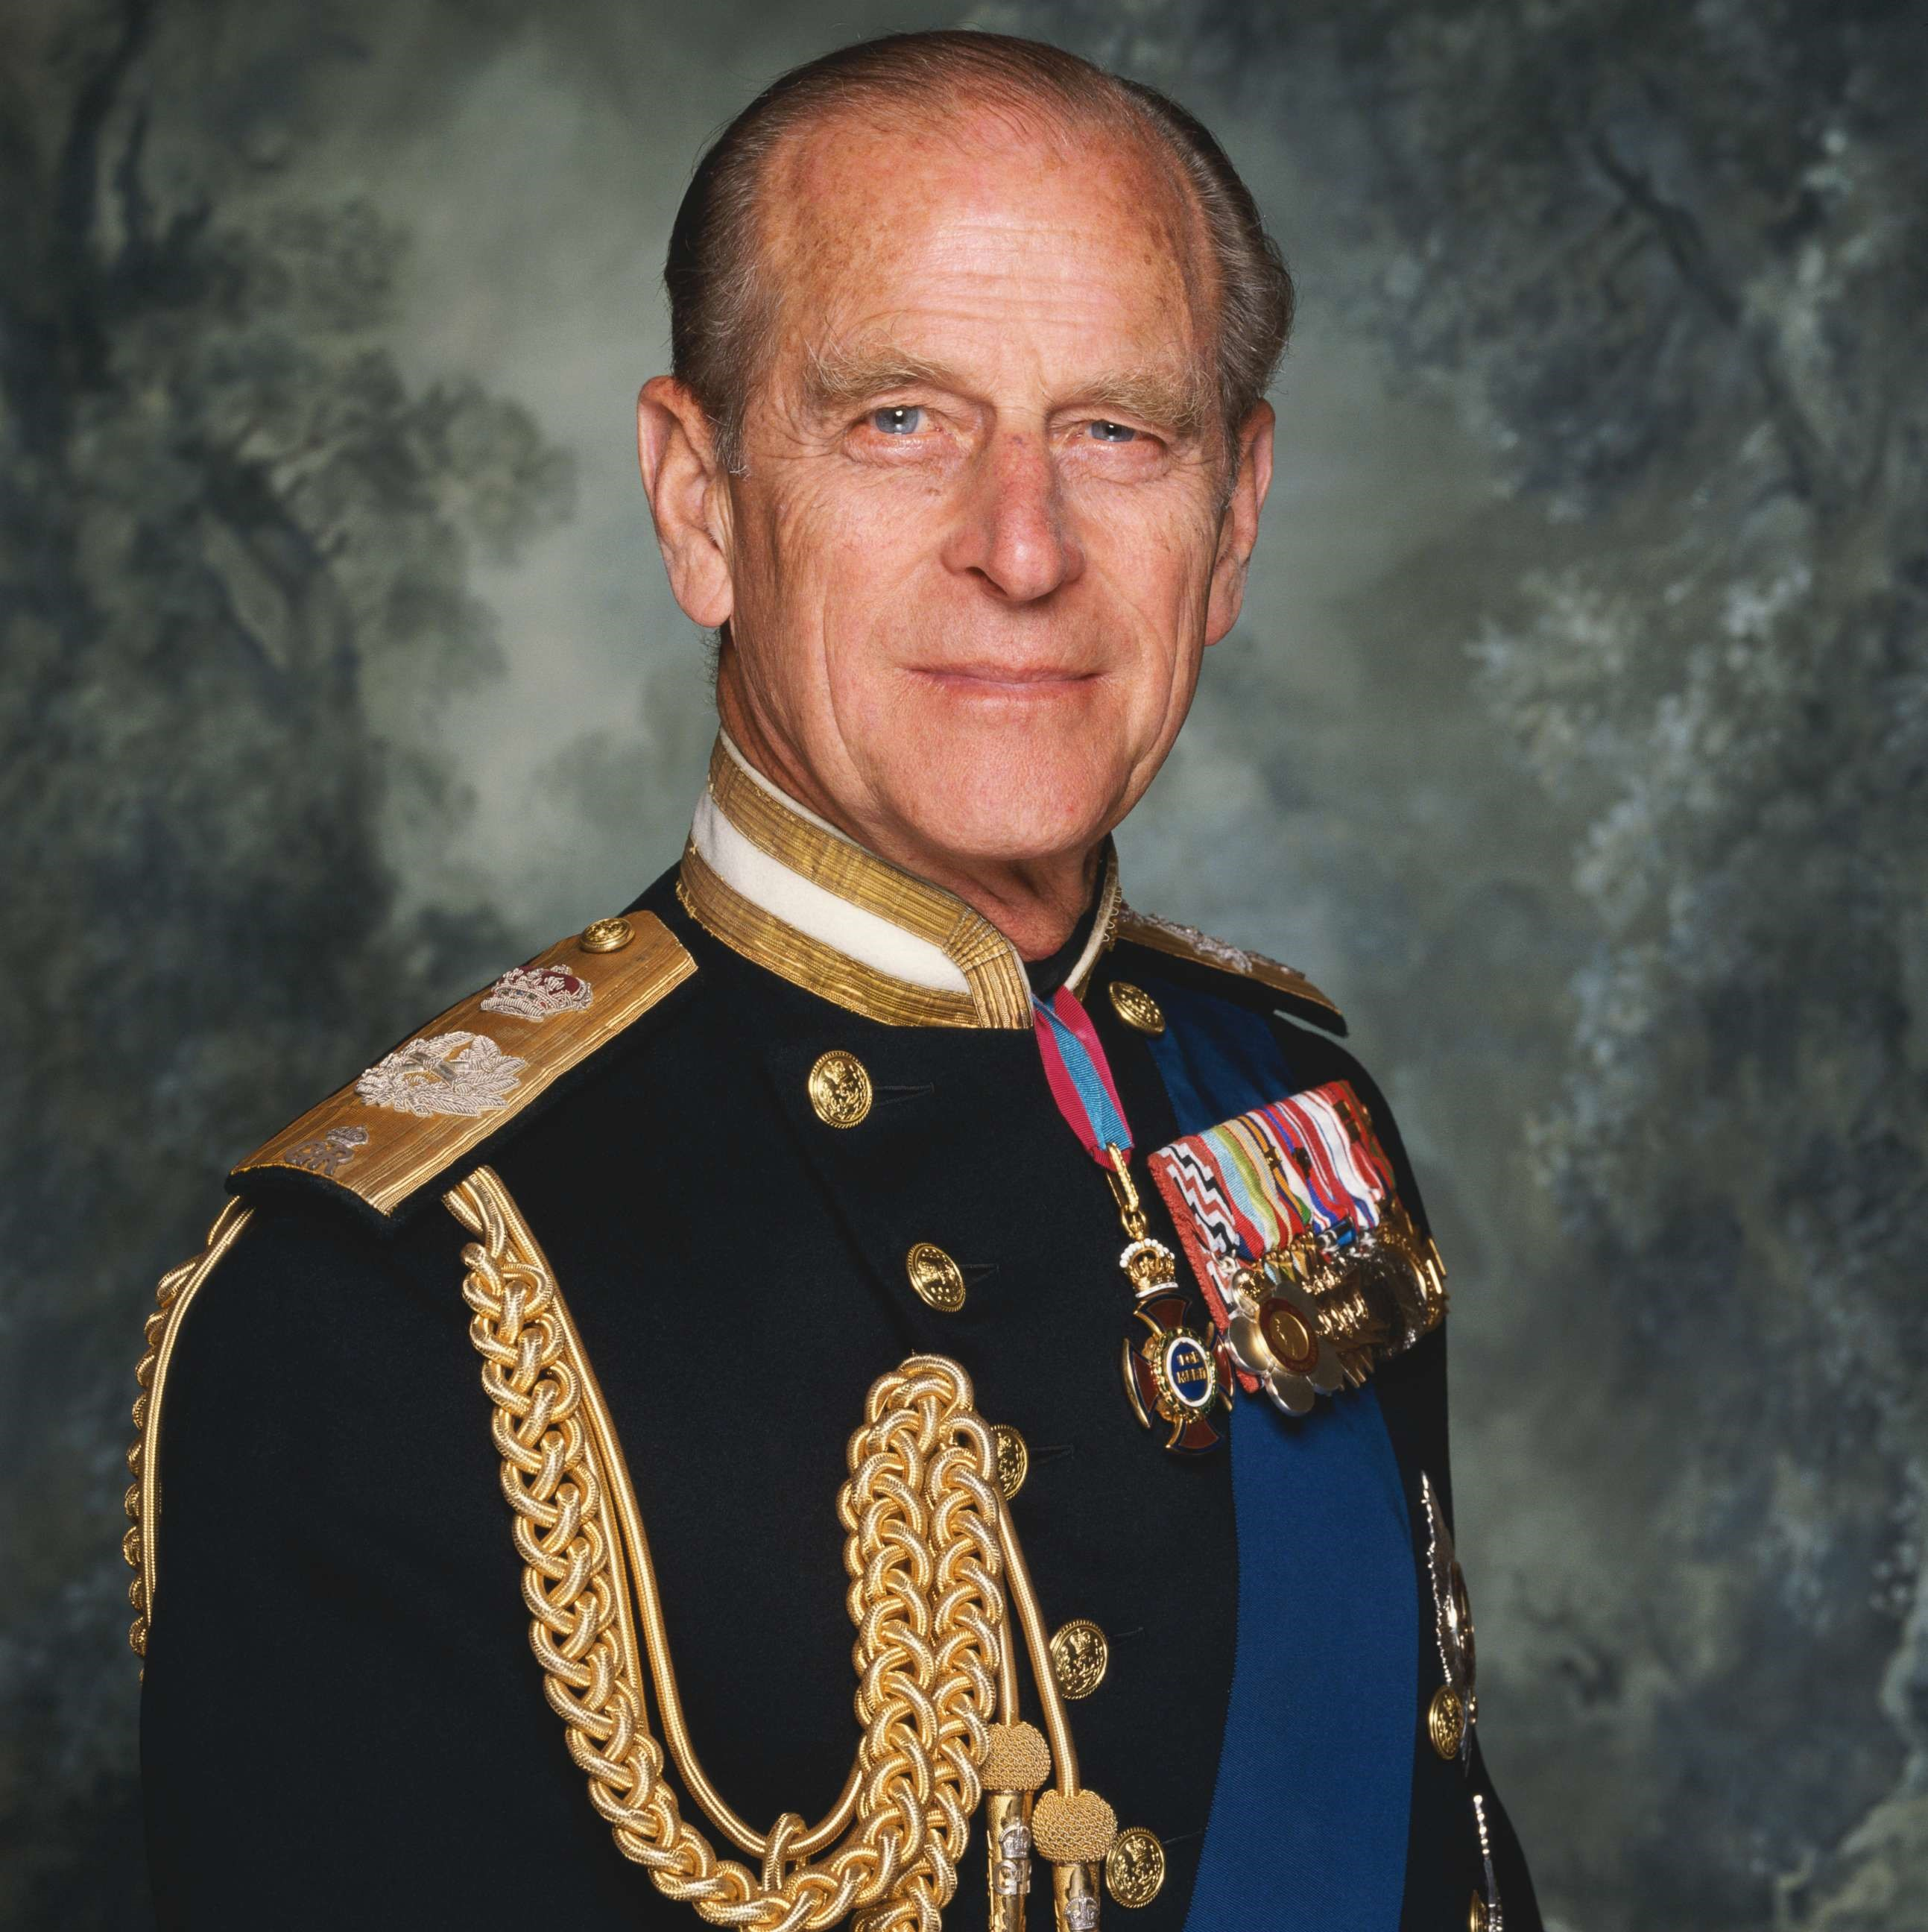 Statement from Commissioner of Yukon Angélique Bernard on the passing of The Duke of Edinburgh